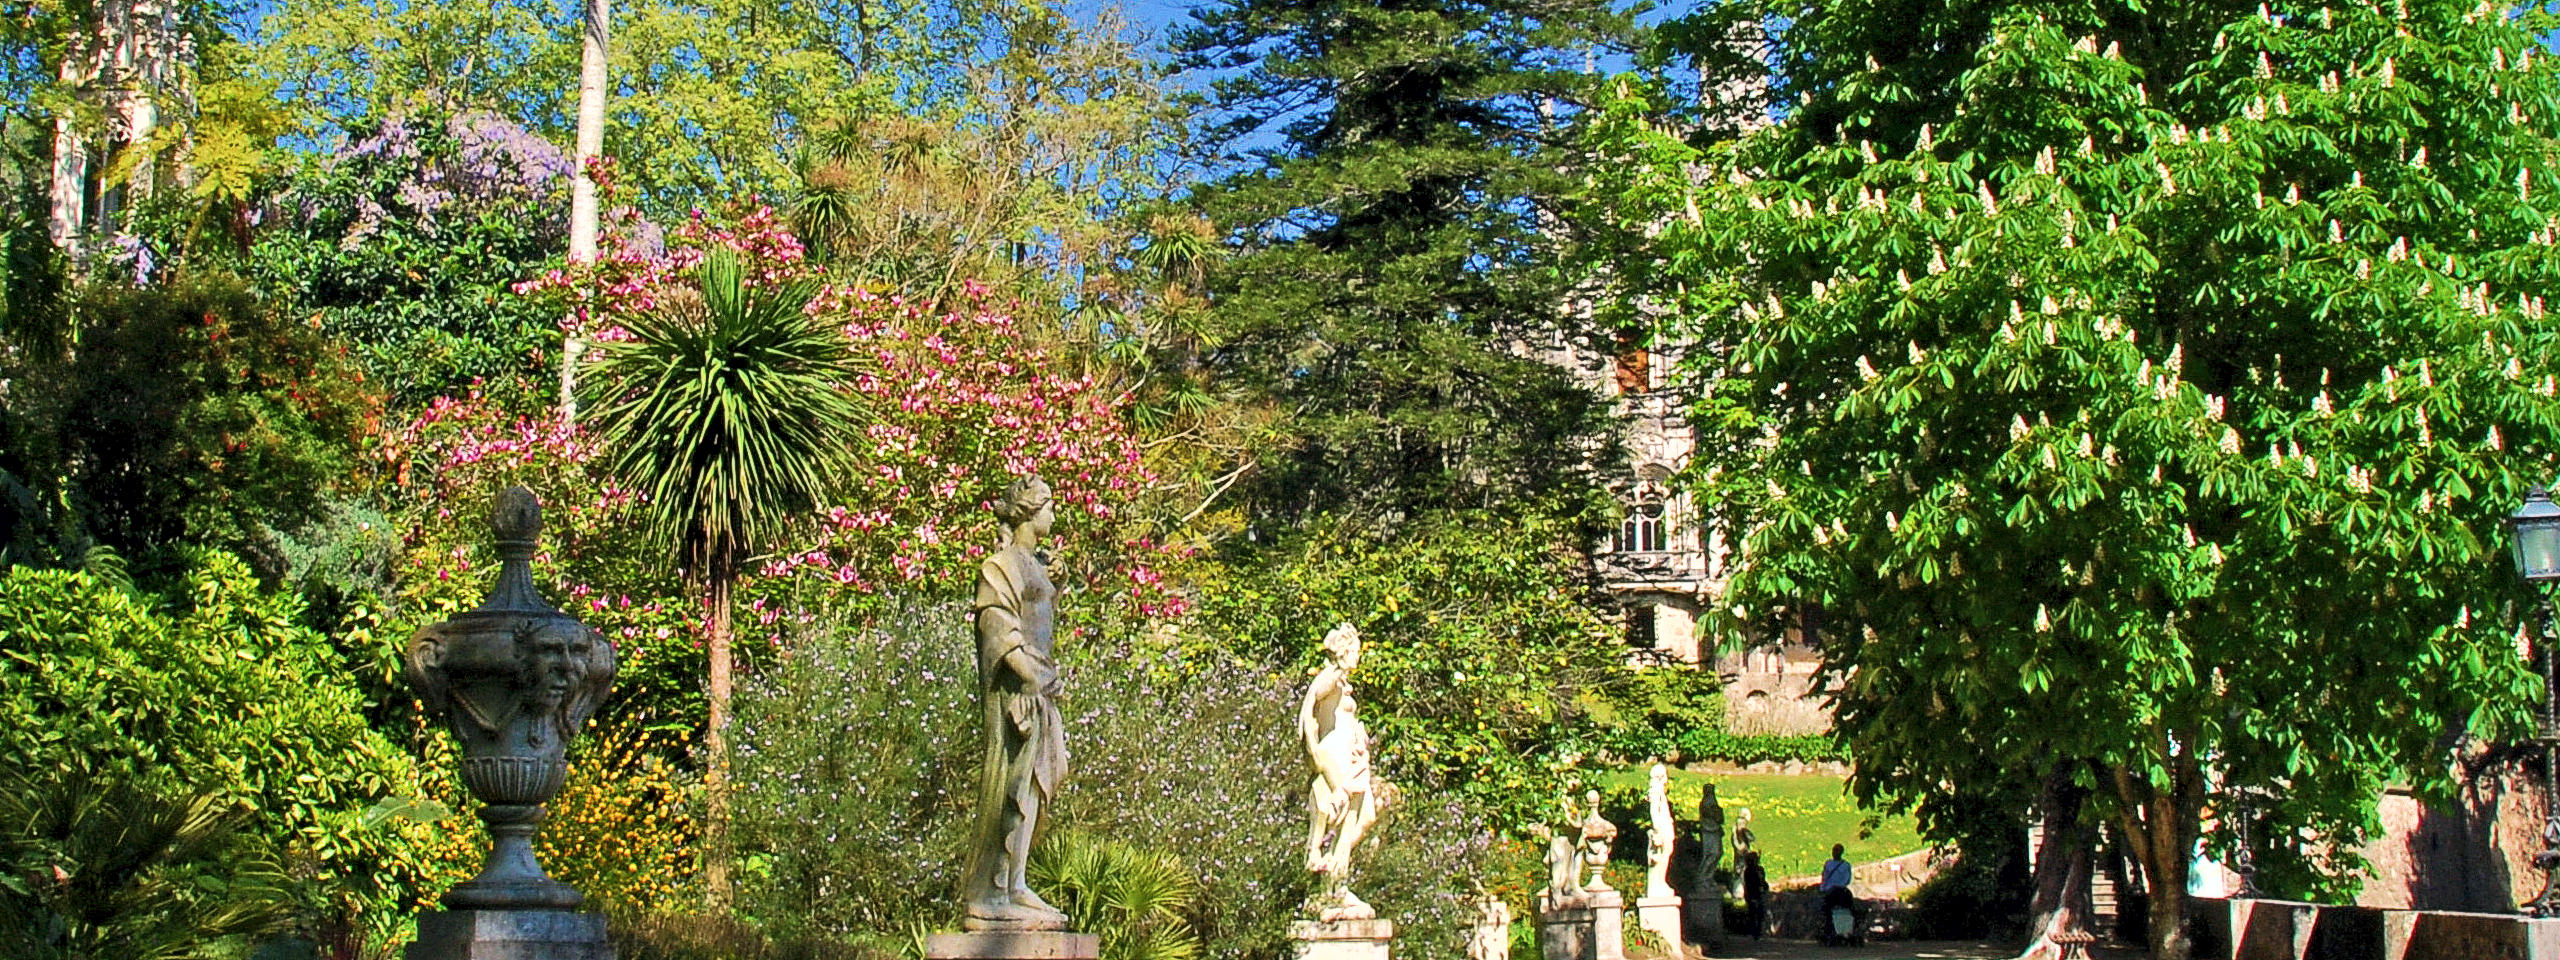 Gods Promenade of the Quinta da Regaleira